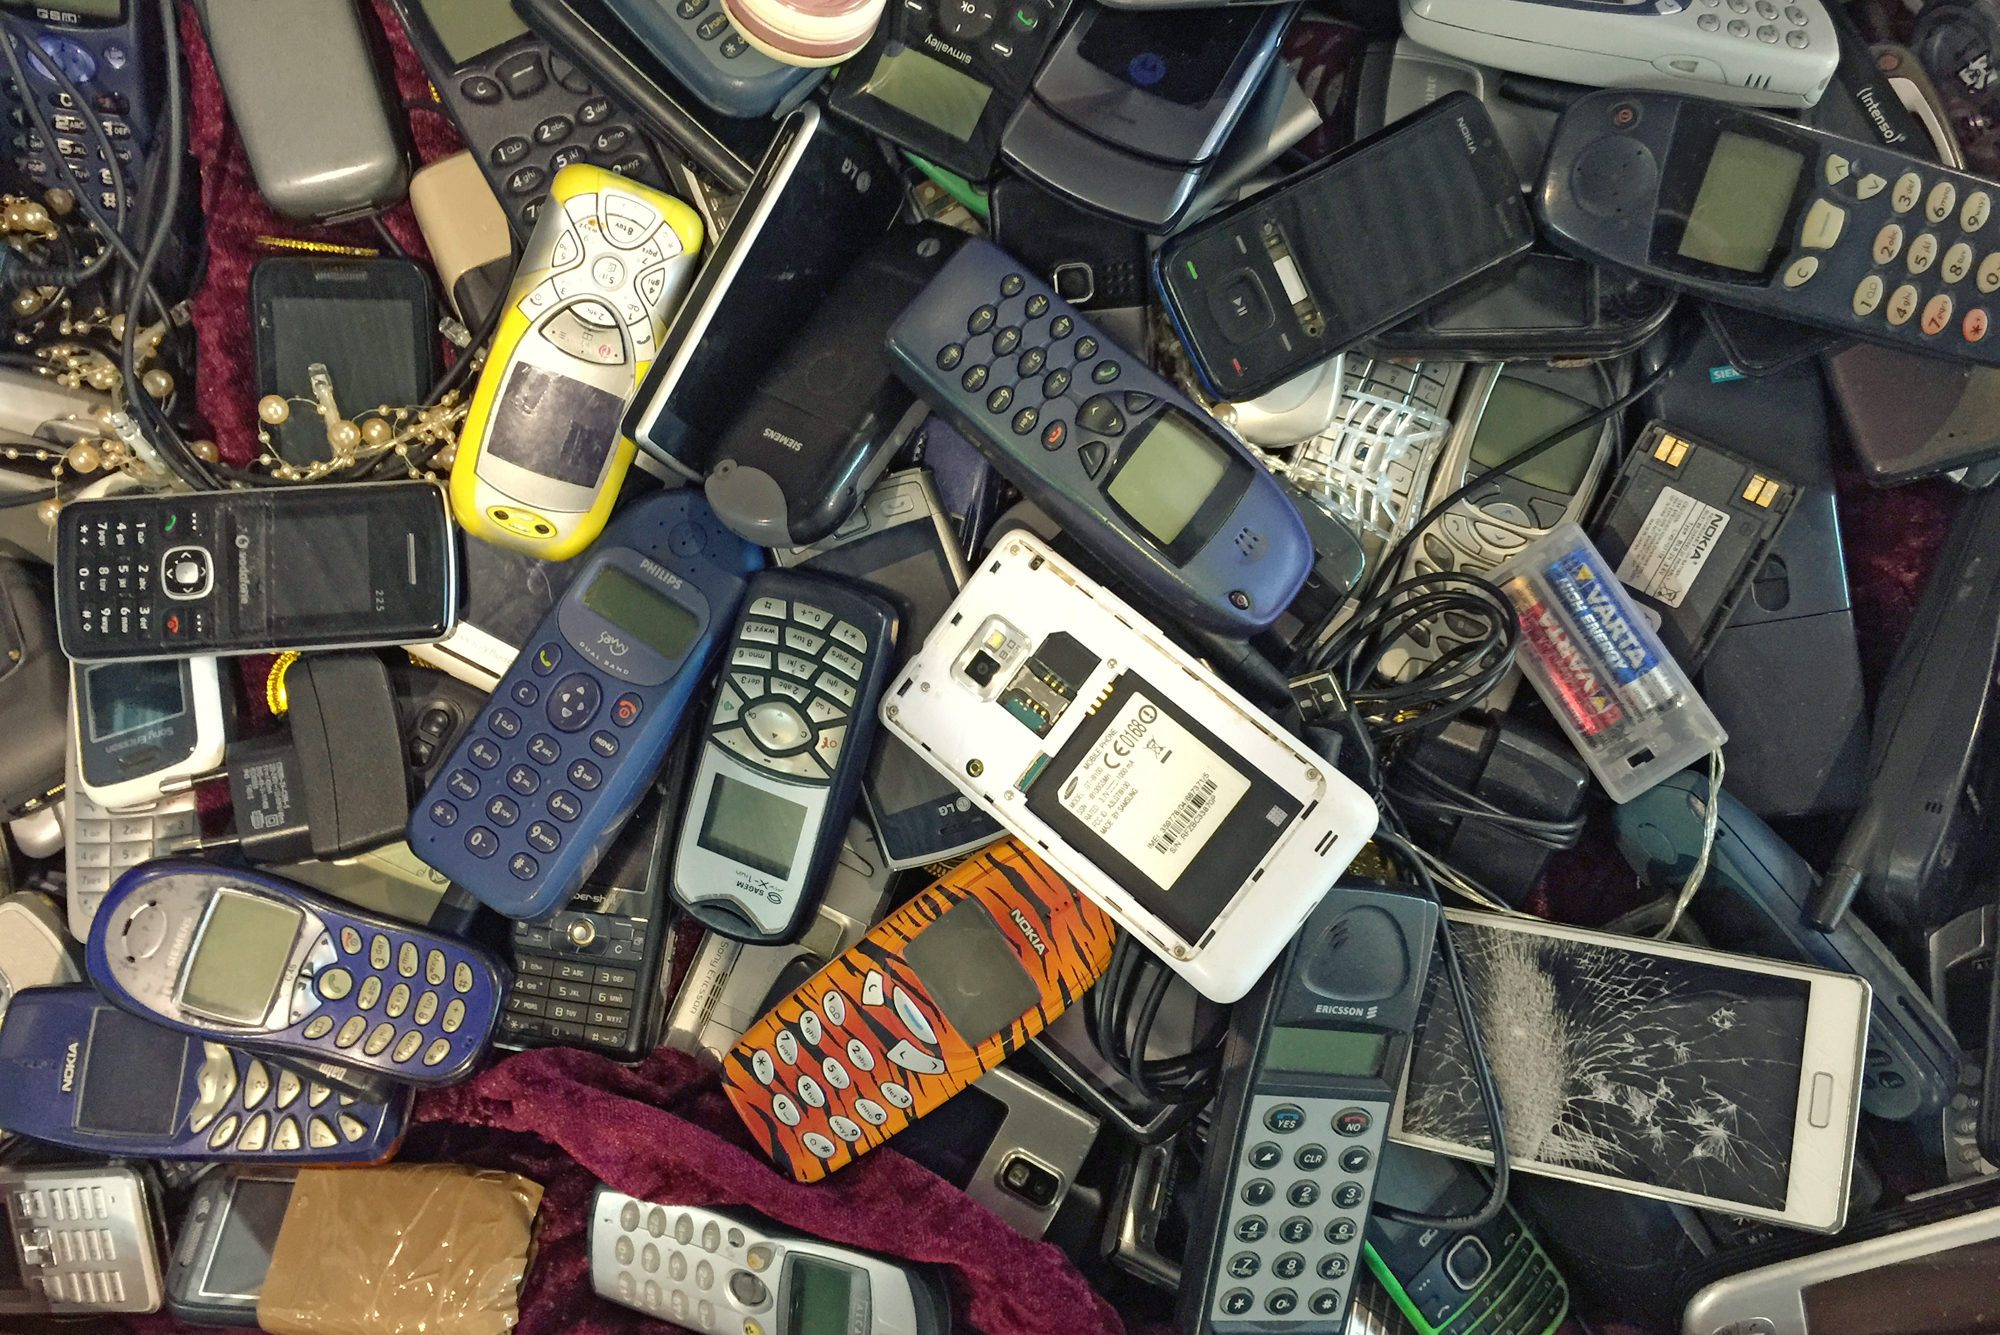 Pile of old, used and partly damaged mobile phones